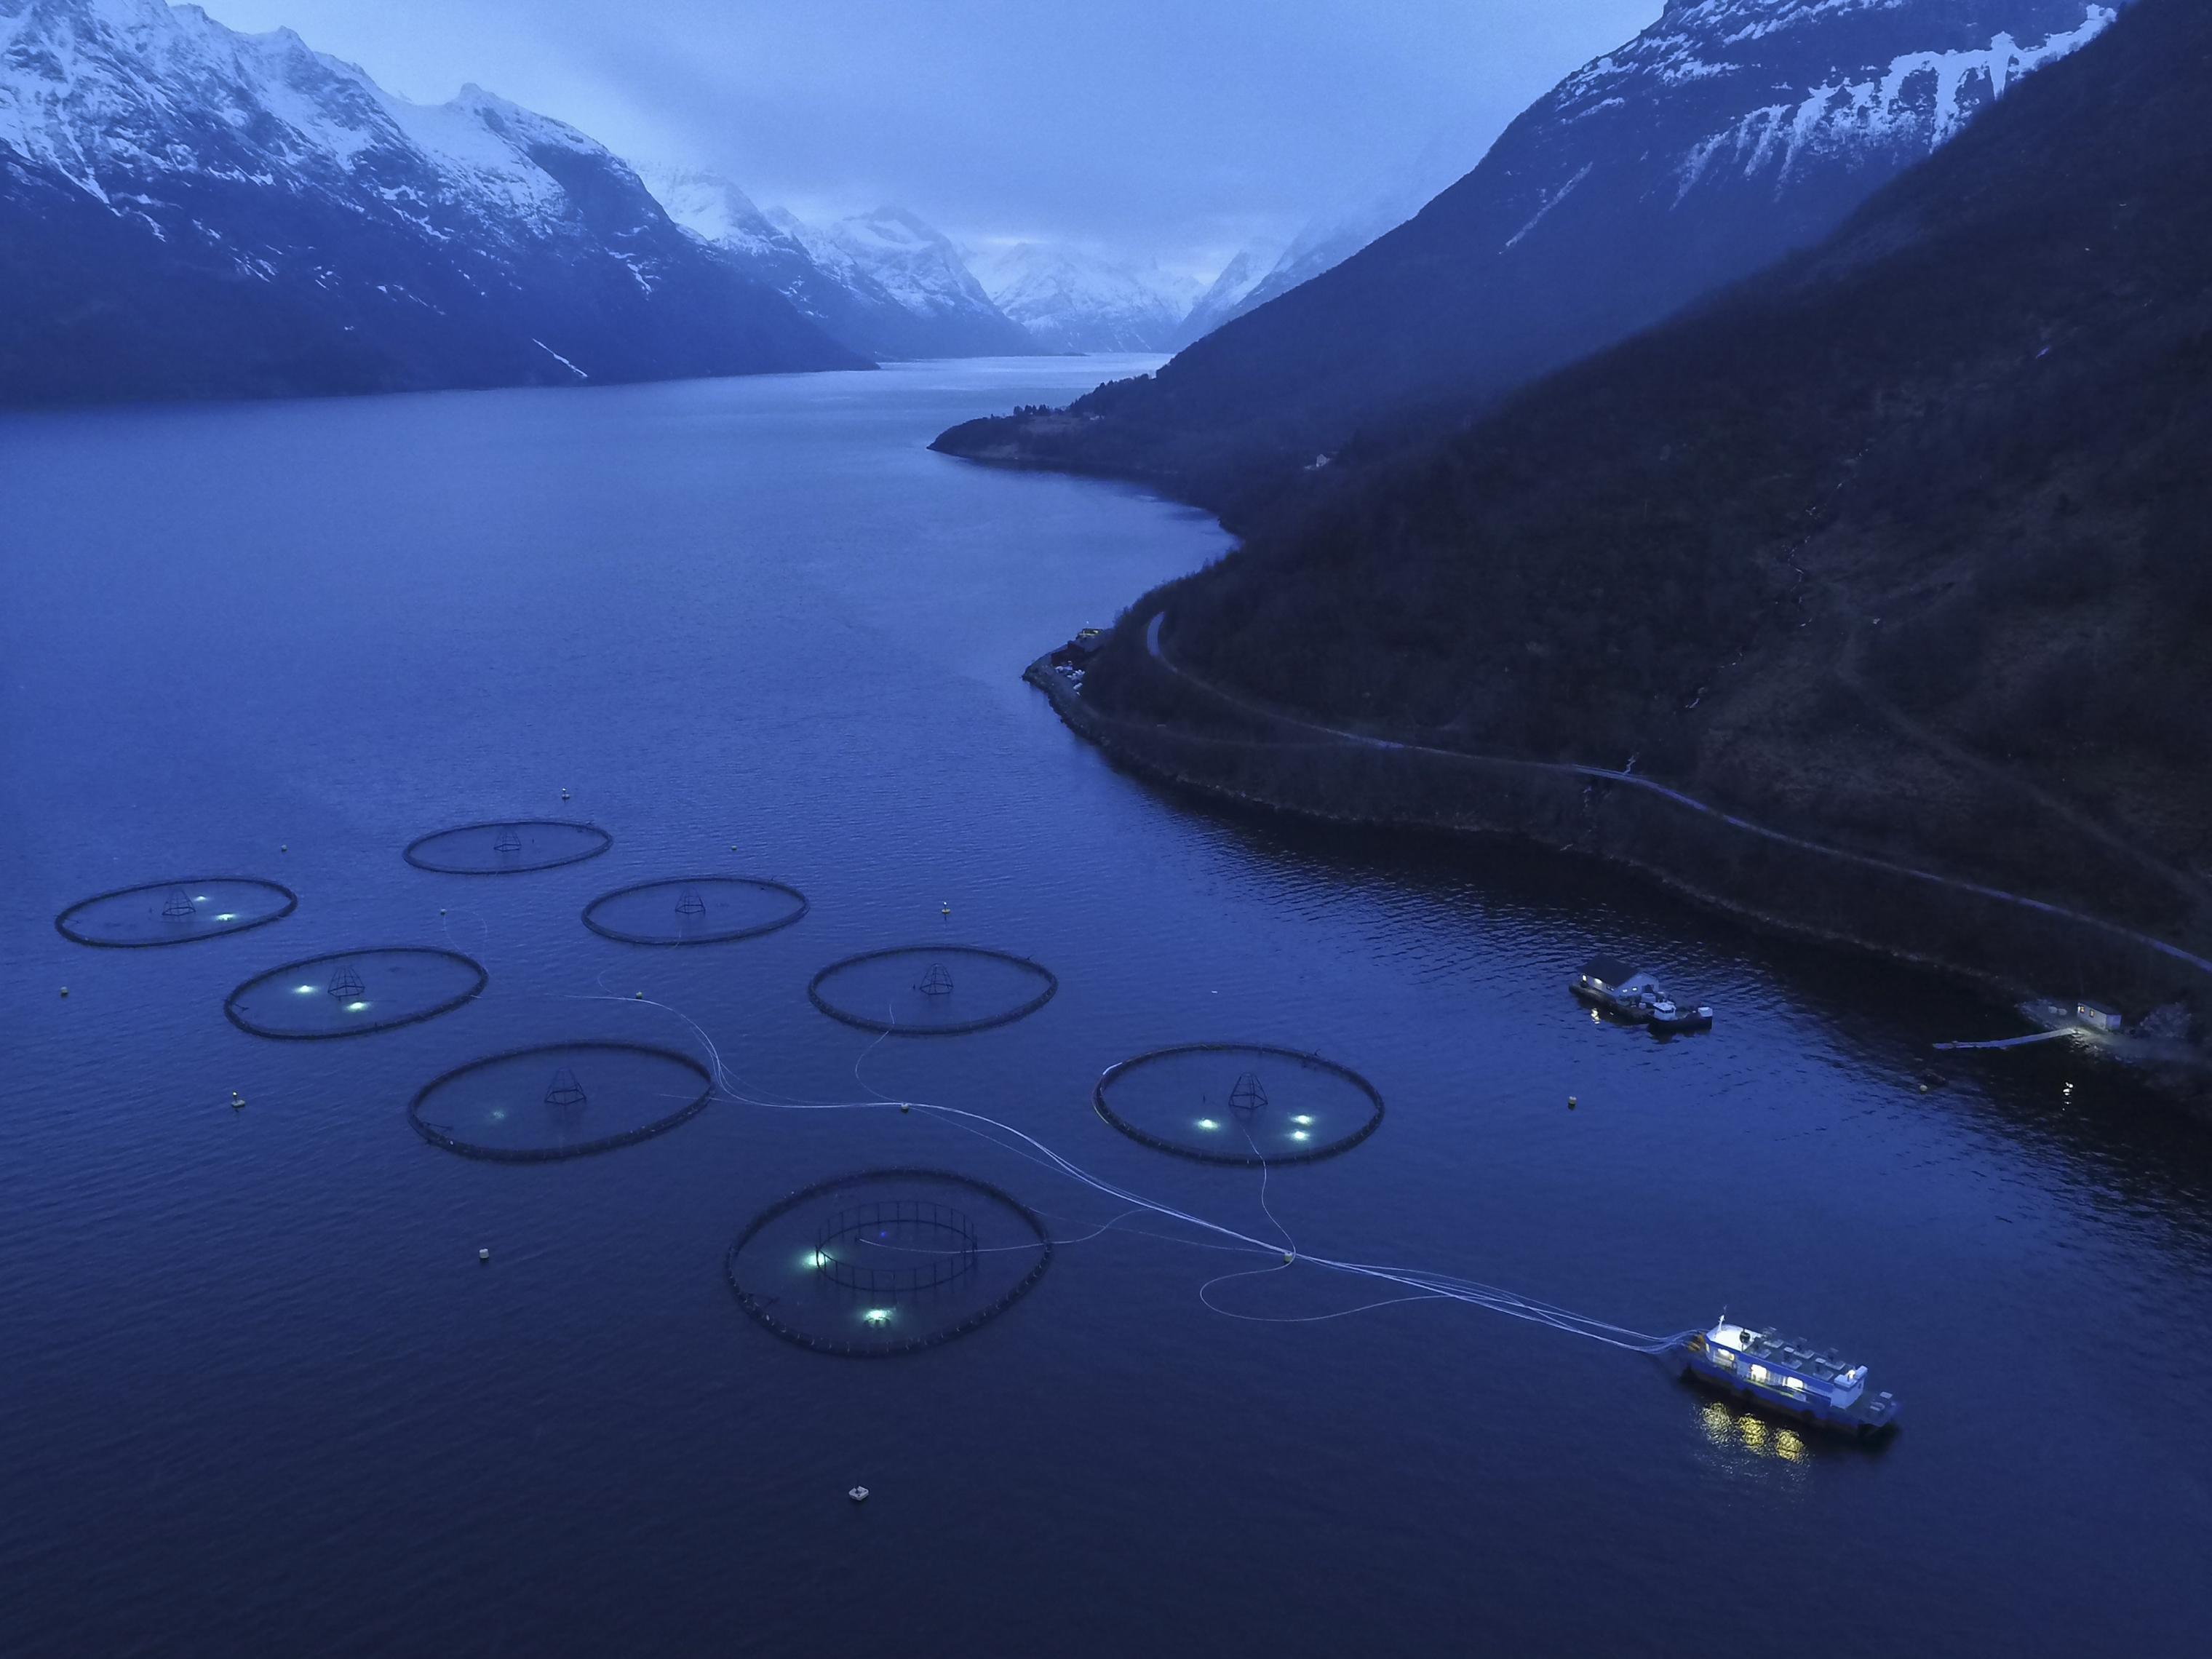 Sagelva salmon farm, on Hjorrund Fjord, with 200,000 atlantic salmon in each of eight pens. Shot by drone in 2016.